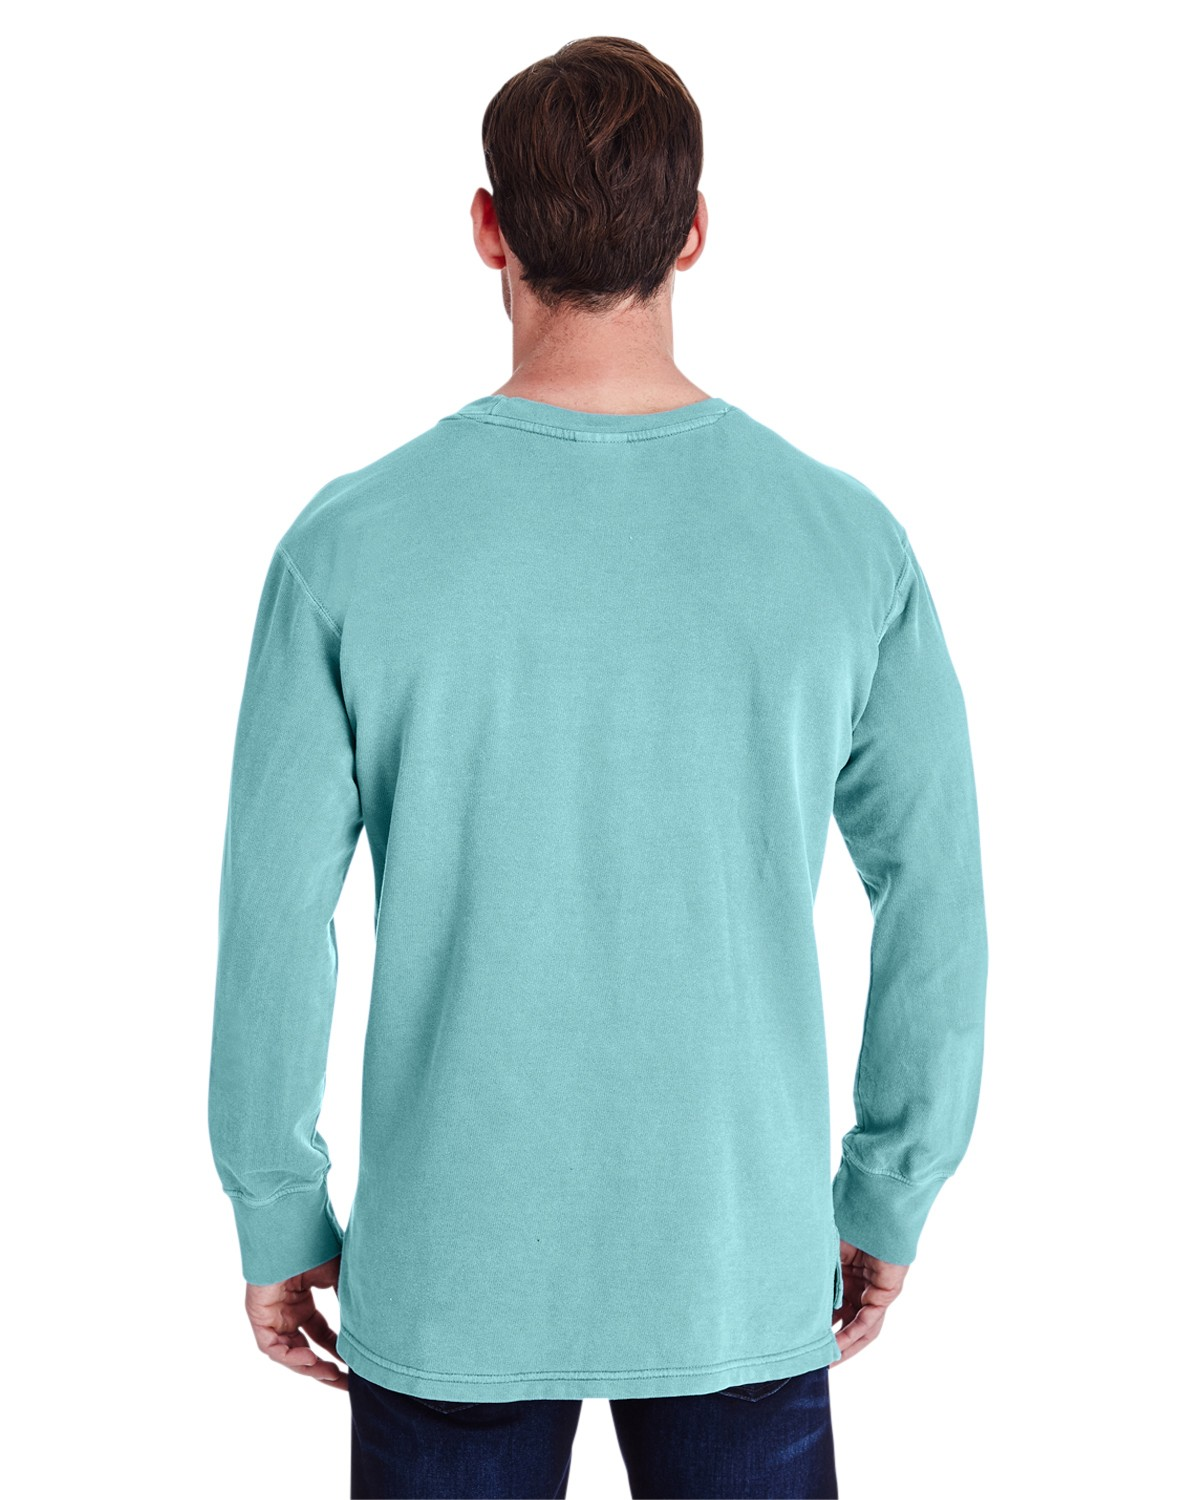 C1536 Comfort Colors CHALKY MINT